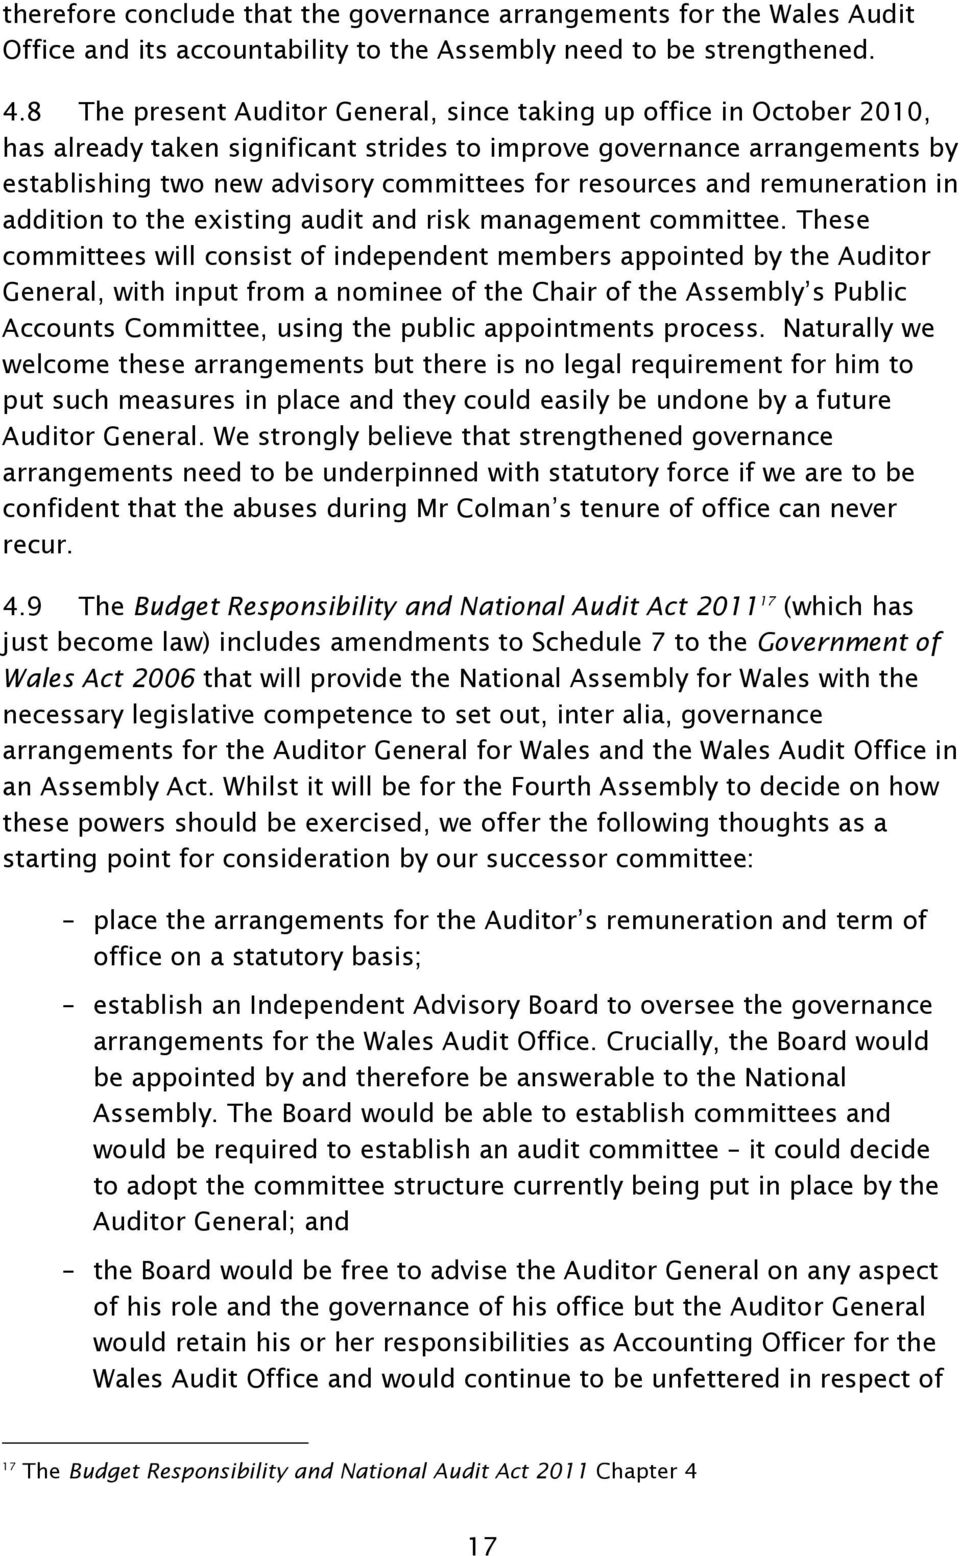 resources and remuneration in addition to the existing audit and risk management committee.